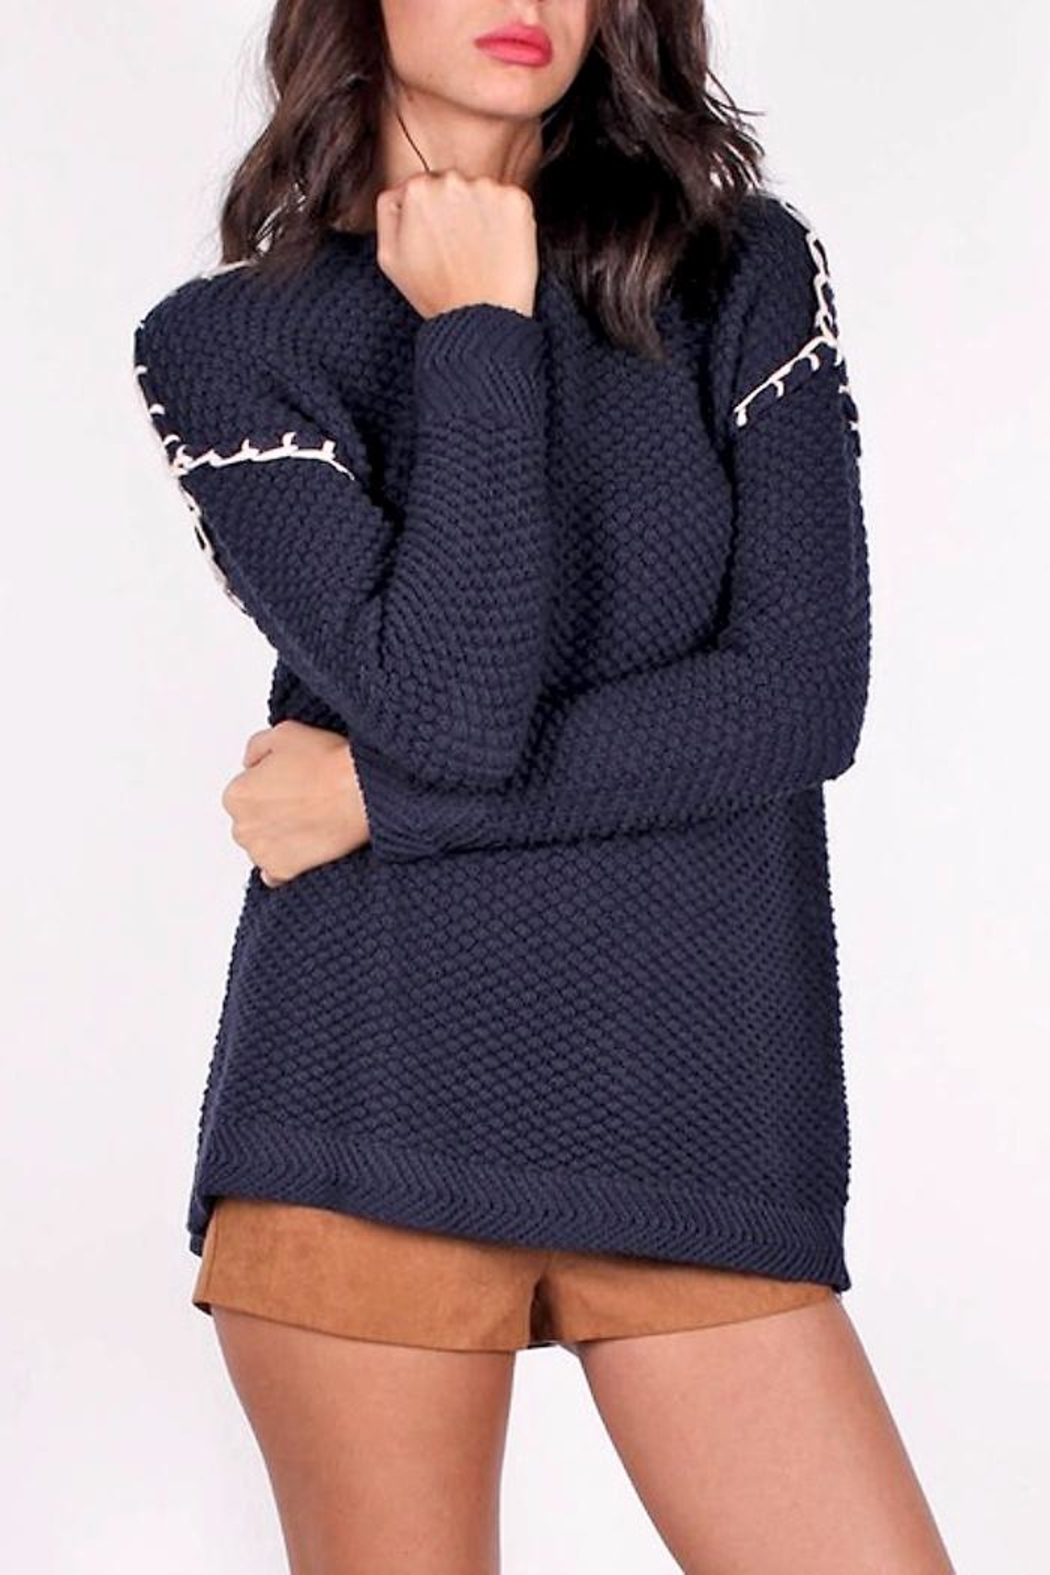 People Outfitter Shannon Open-Back Sweater - Main Image